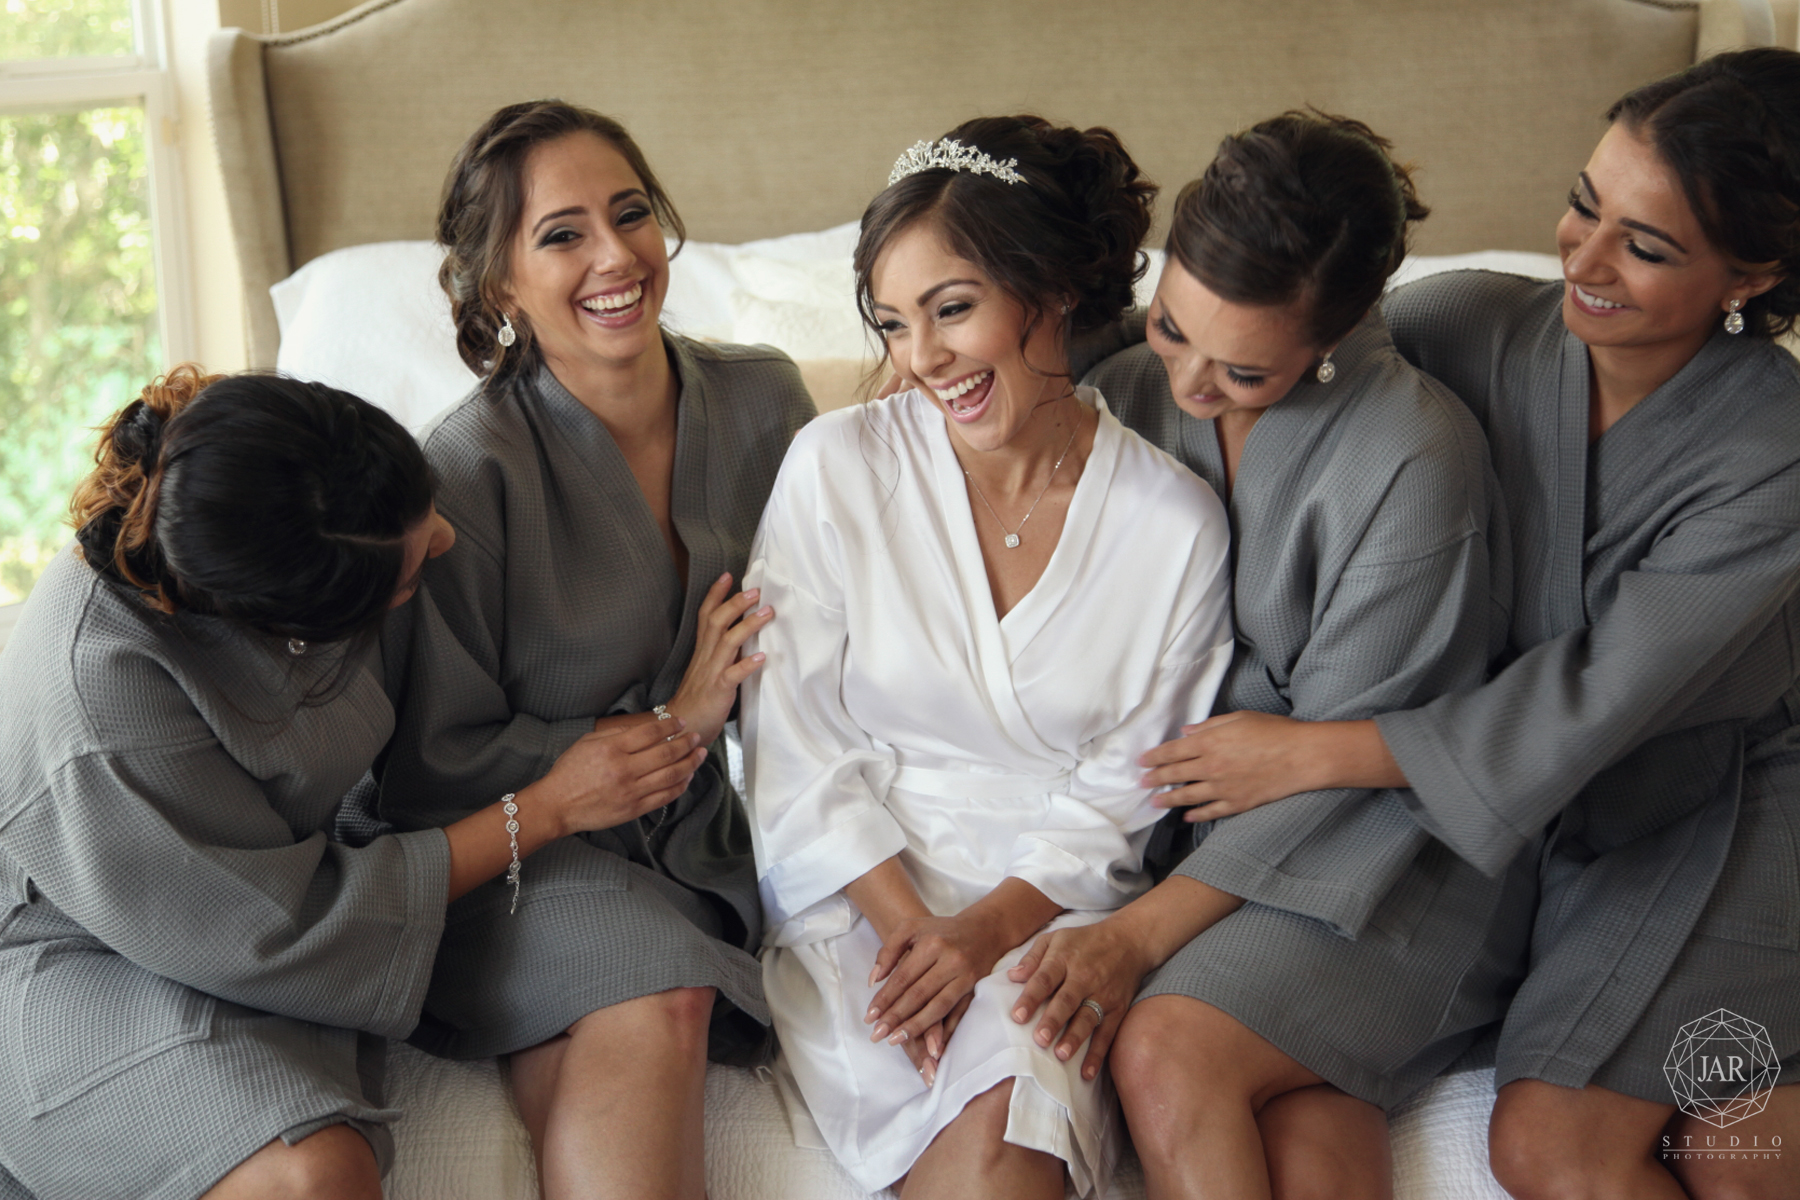 10-bridesmaids-fun-beautiful-unique-jarstudio-photography-orlando.JPG